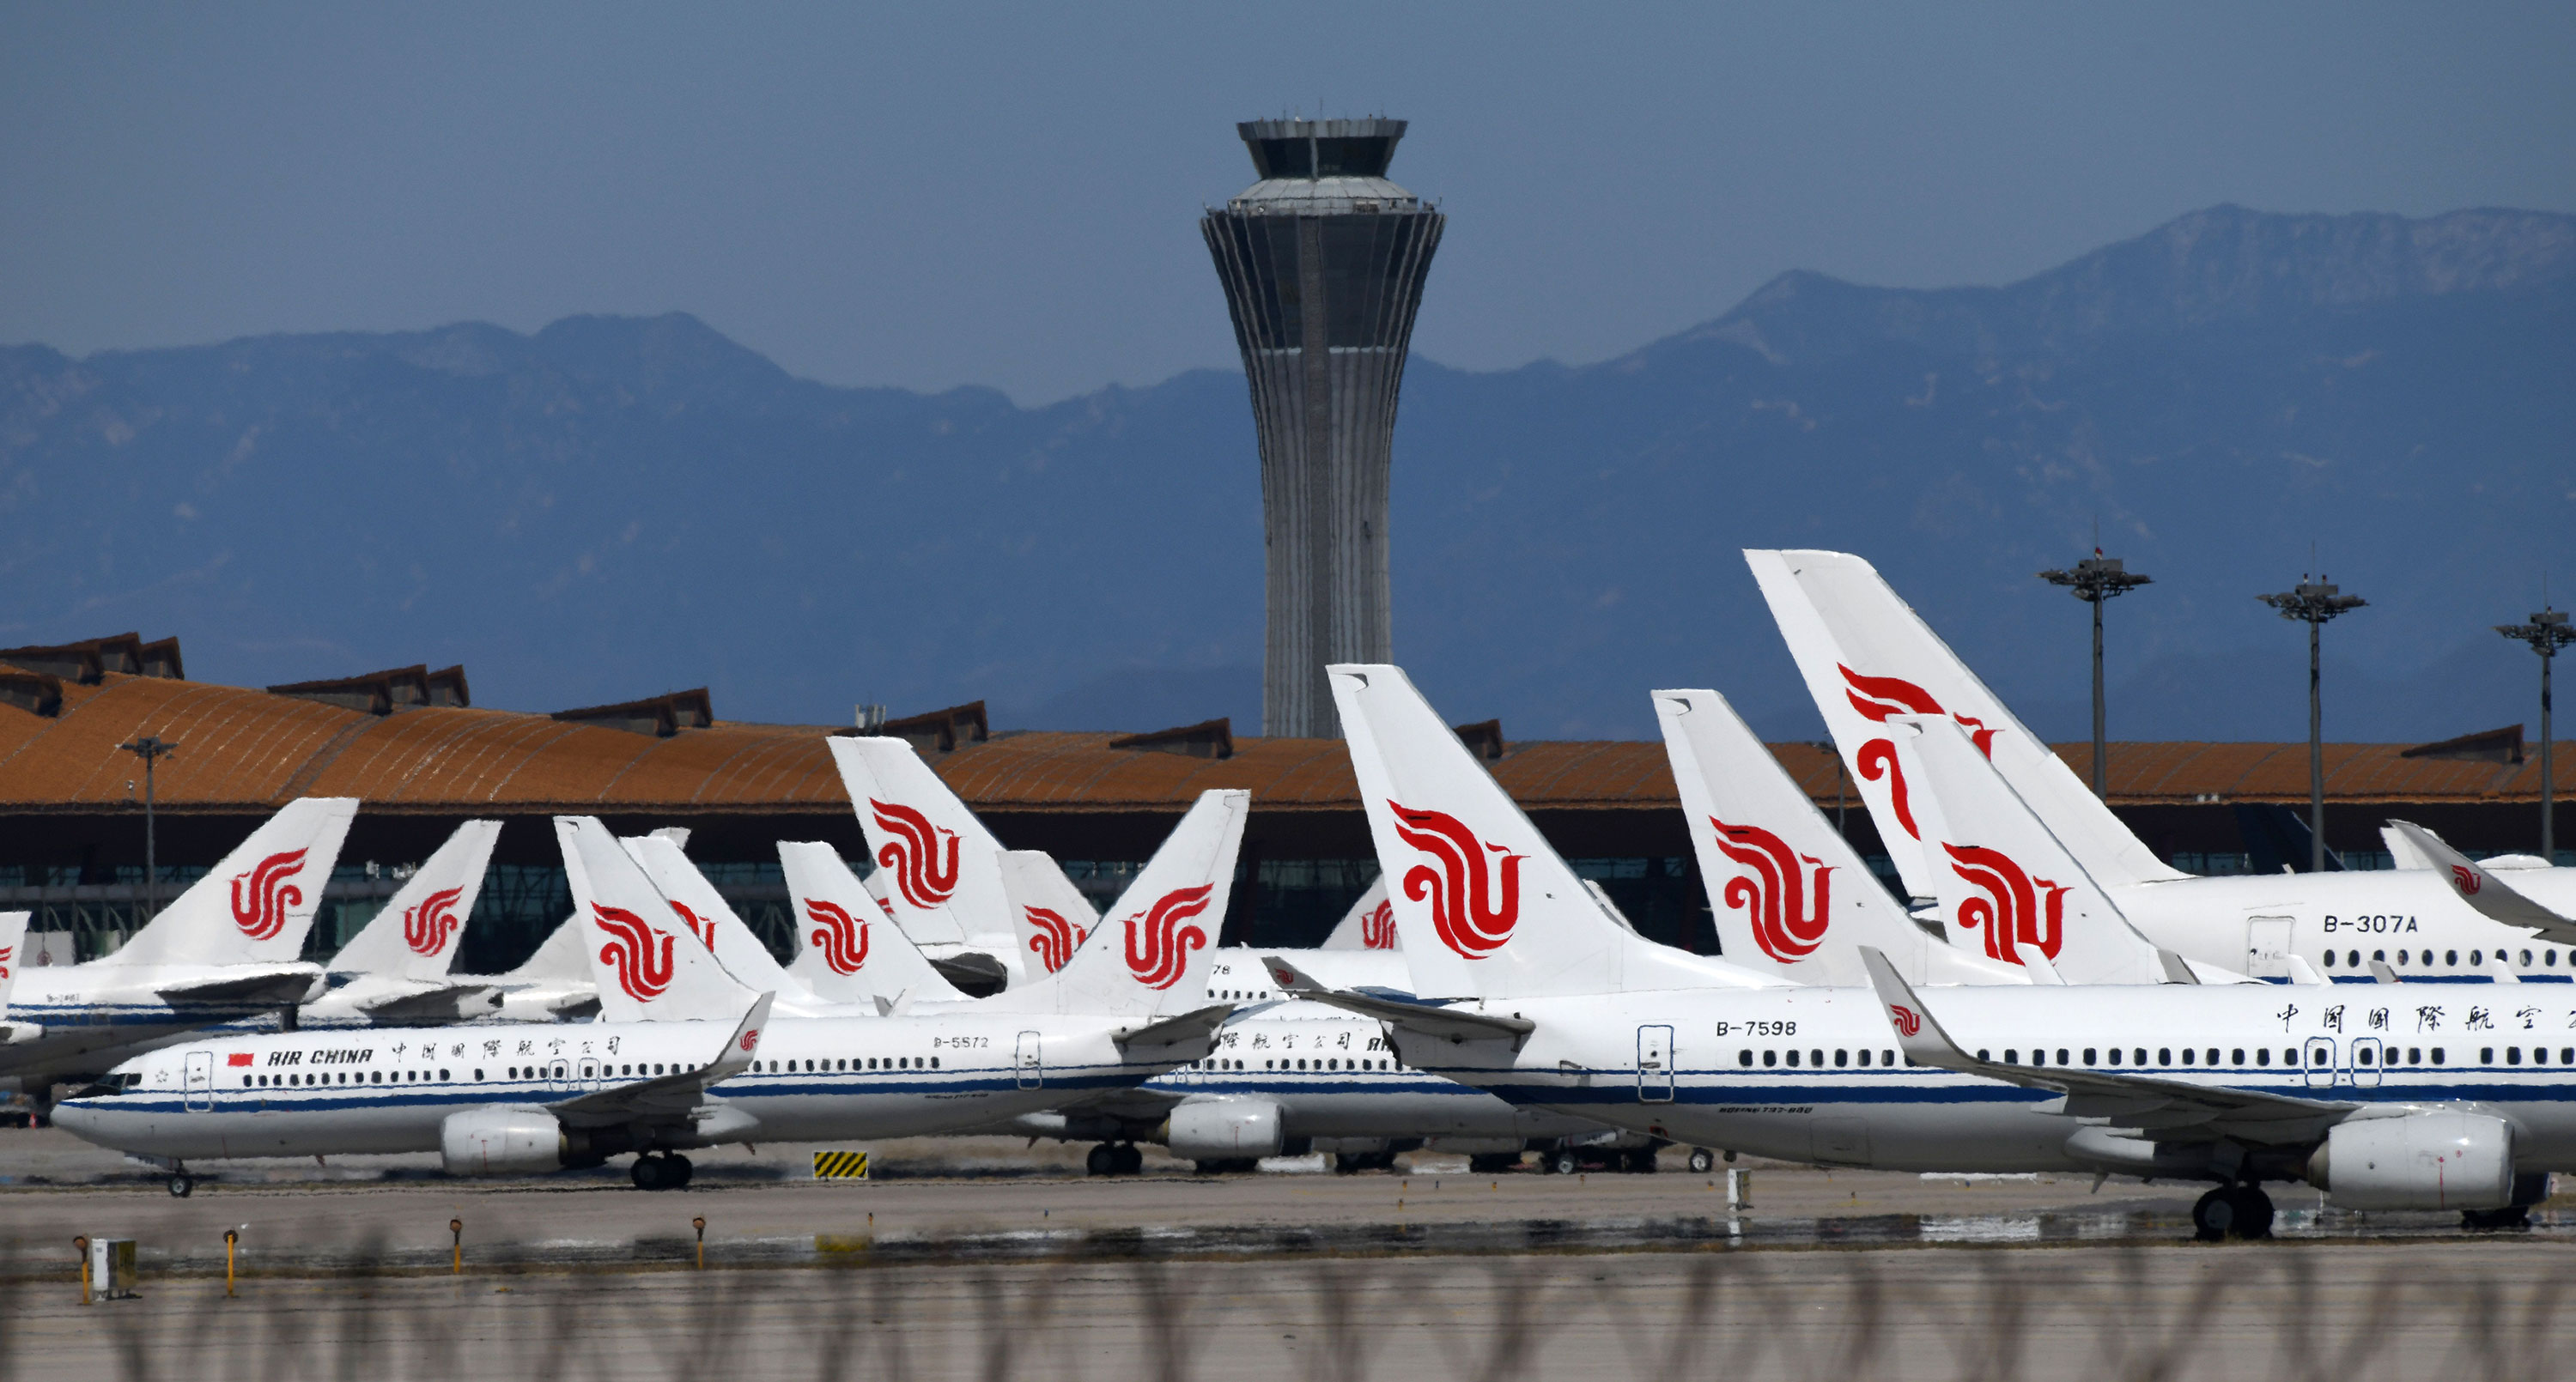 Air China planes sit on the tarmac at Beijing Capital Airport on March 27, in Beijing, China.